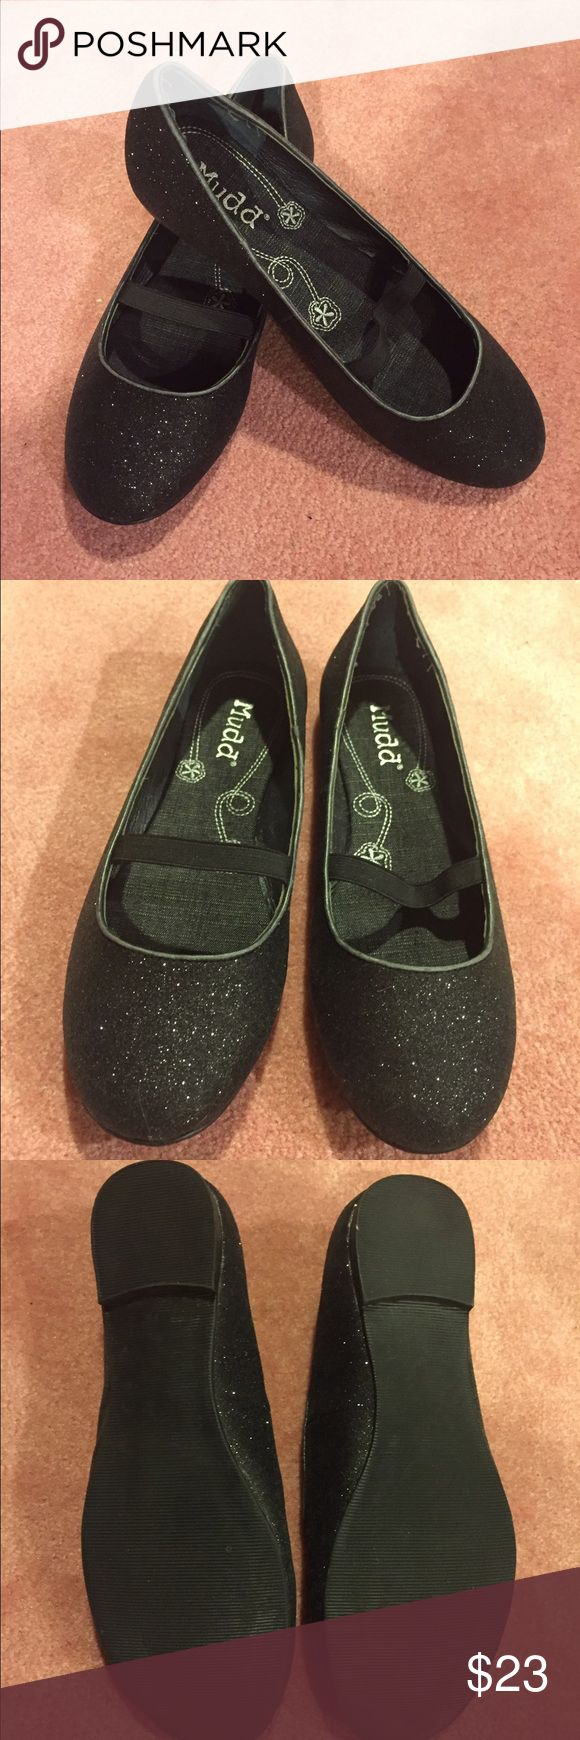 Mudd black sparkle flats Muddy black sparkle flats size 9 women. Worn once. Minimal to no wear. Mudd Shoes Flats & Loafers